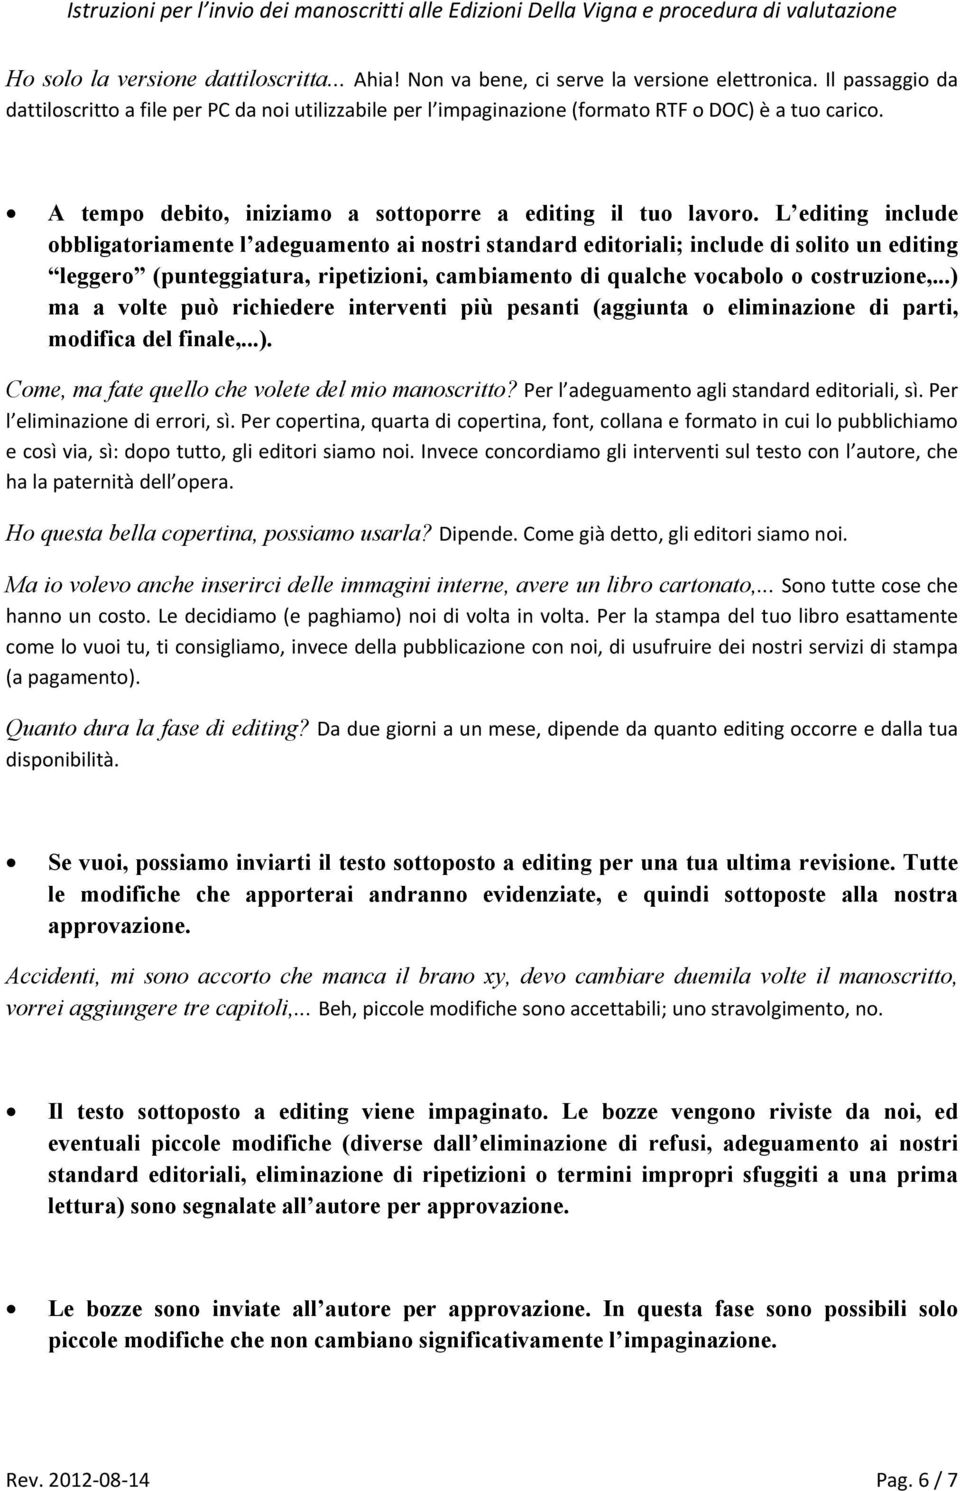 L editing include obbligatoriamente l adeguamento ai nostri standard editoriali; include di solito un editing leggero (punteggiatura, ripetizioni, cambiamento di qualche vocabolo o costruzione,.